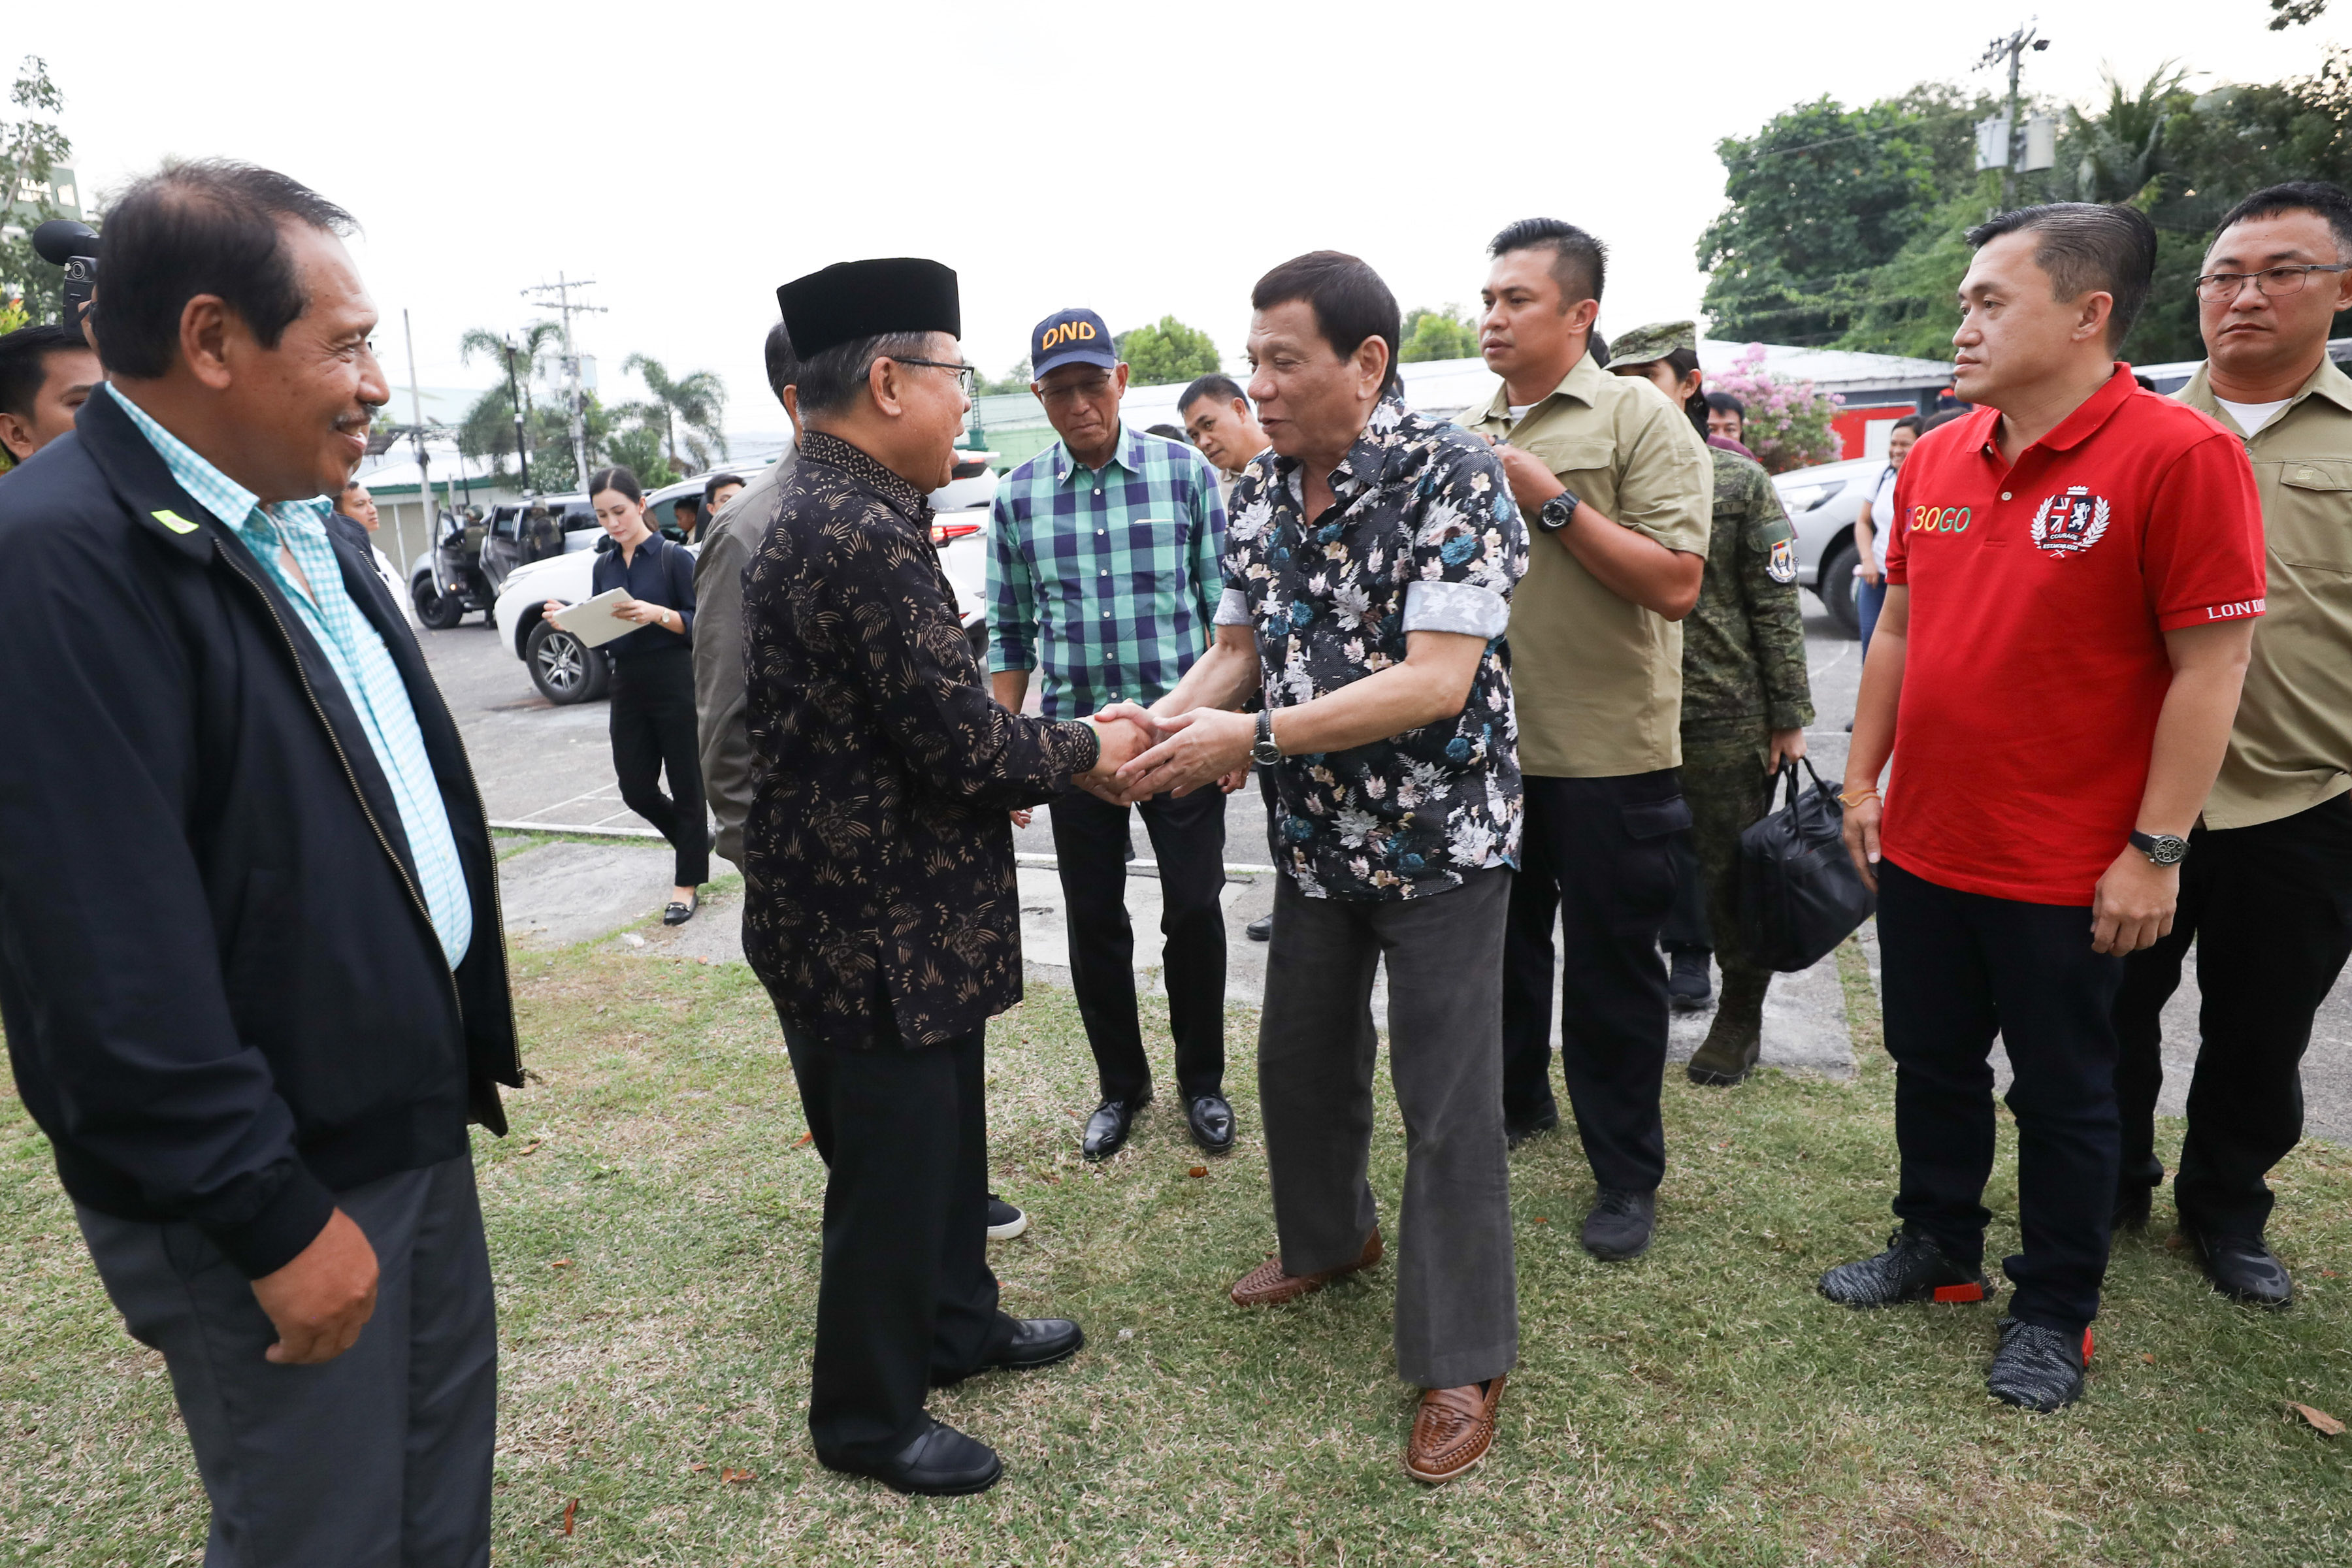 HELPING HAND. President Rodrigo Duterte is welcomed by Moro Islamic Liberation Front Chairman Murad Ebrahim upon his arrival at the Shariff Kabunsuan Cultural Complex in Cotabato City on his way to attend the Peace Assembly for the Ratification of the Bangsamoro Organic Law. Malacau00f1ang photo